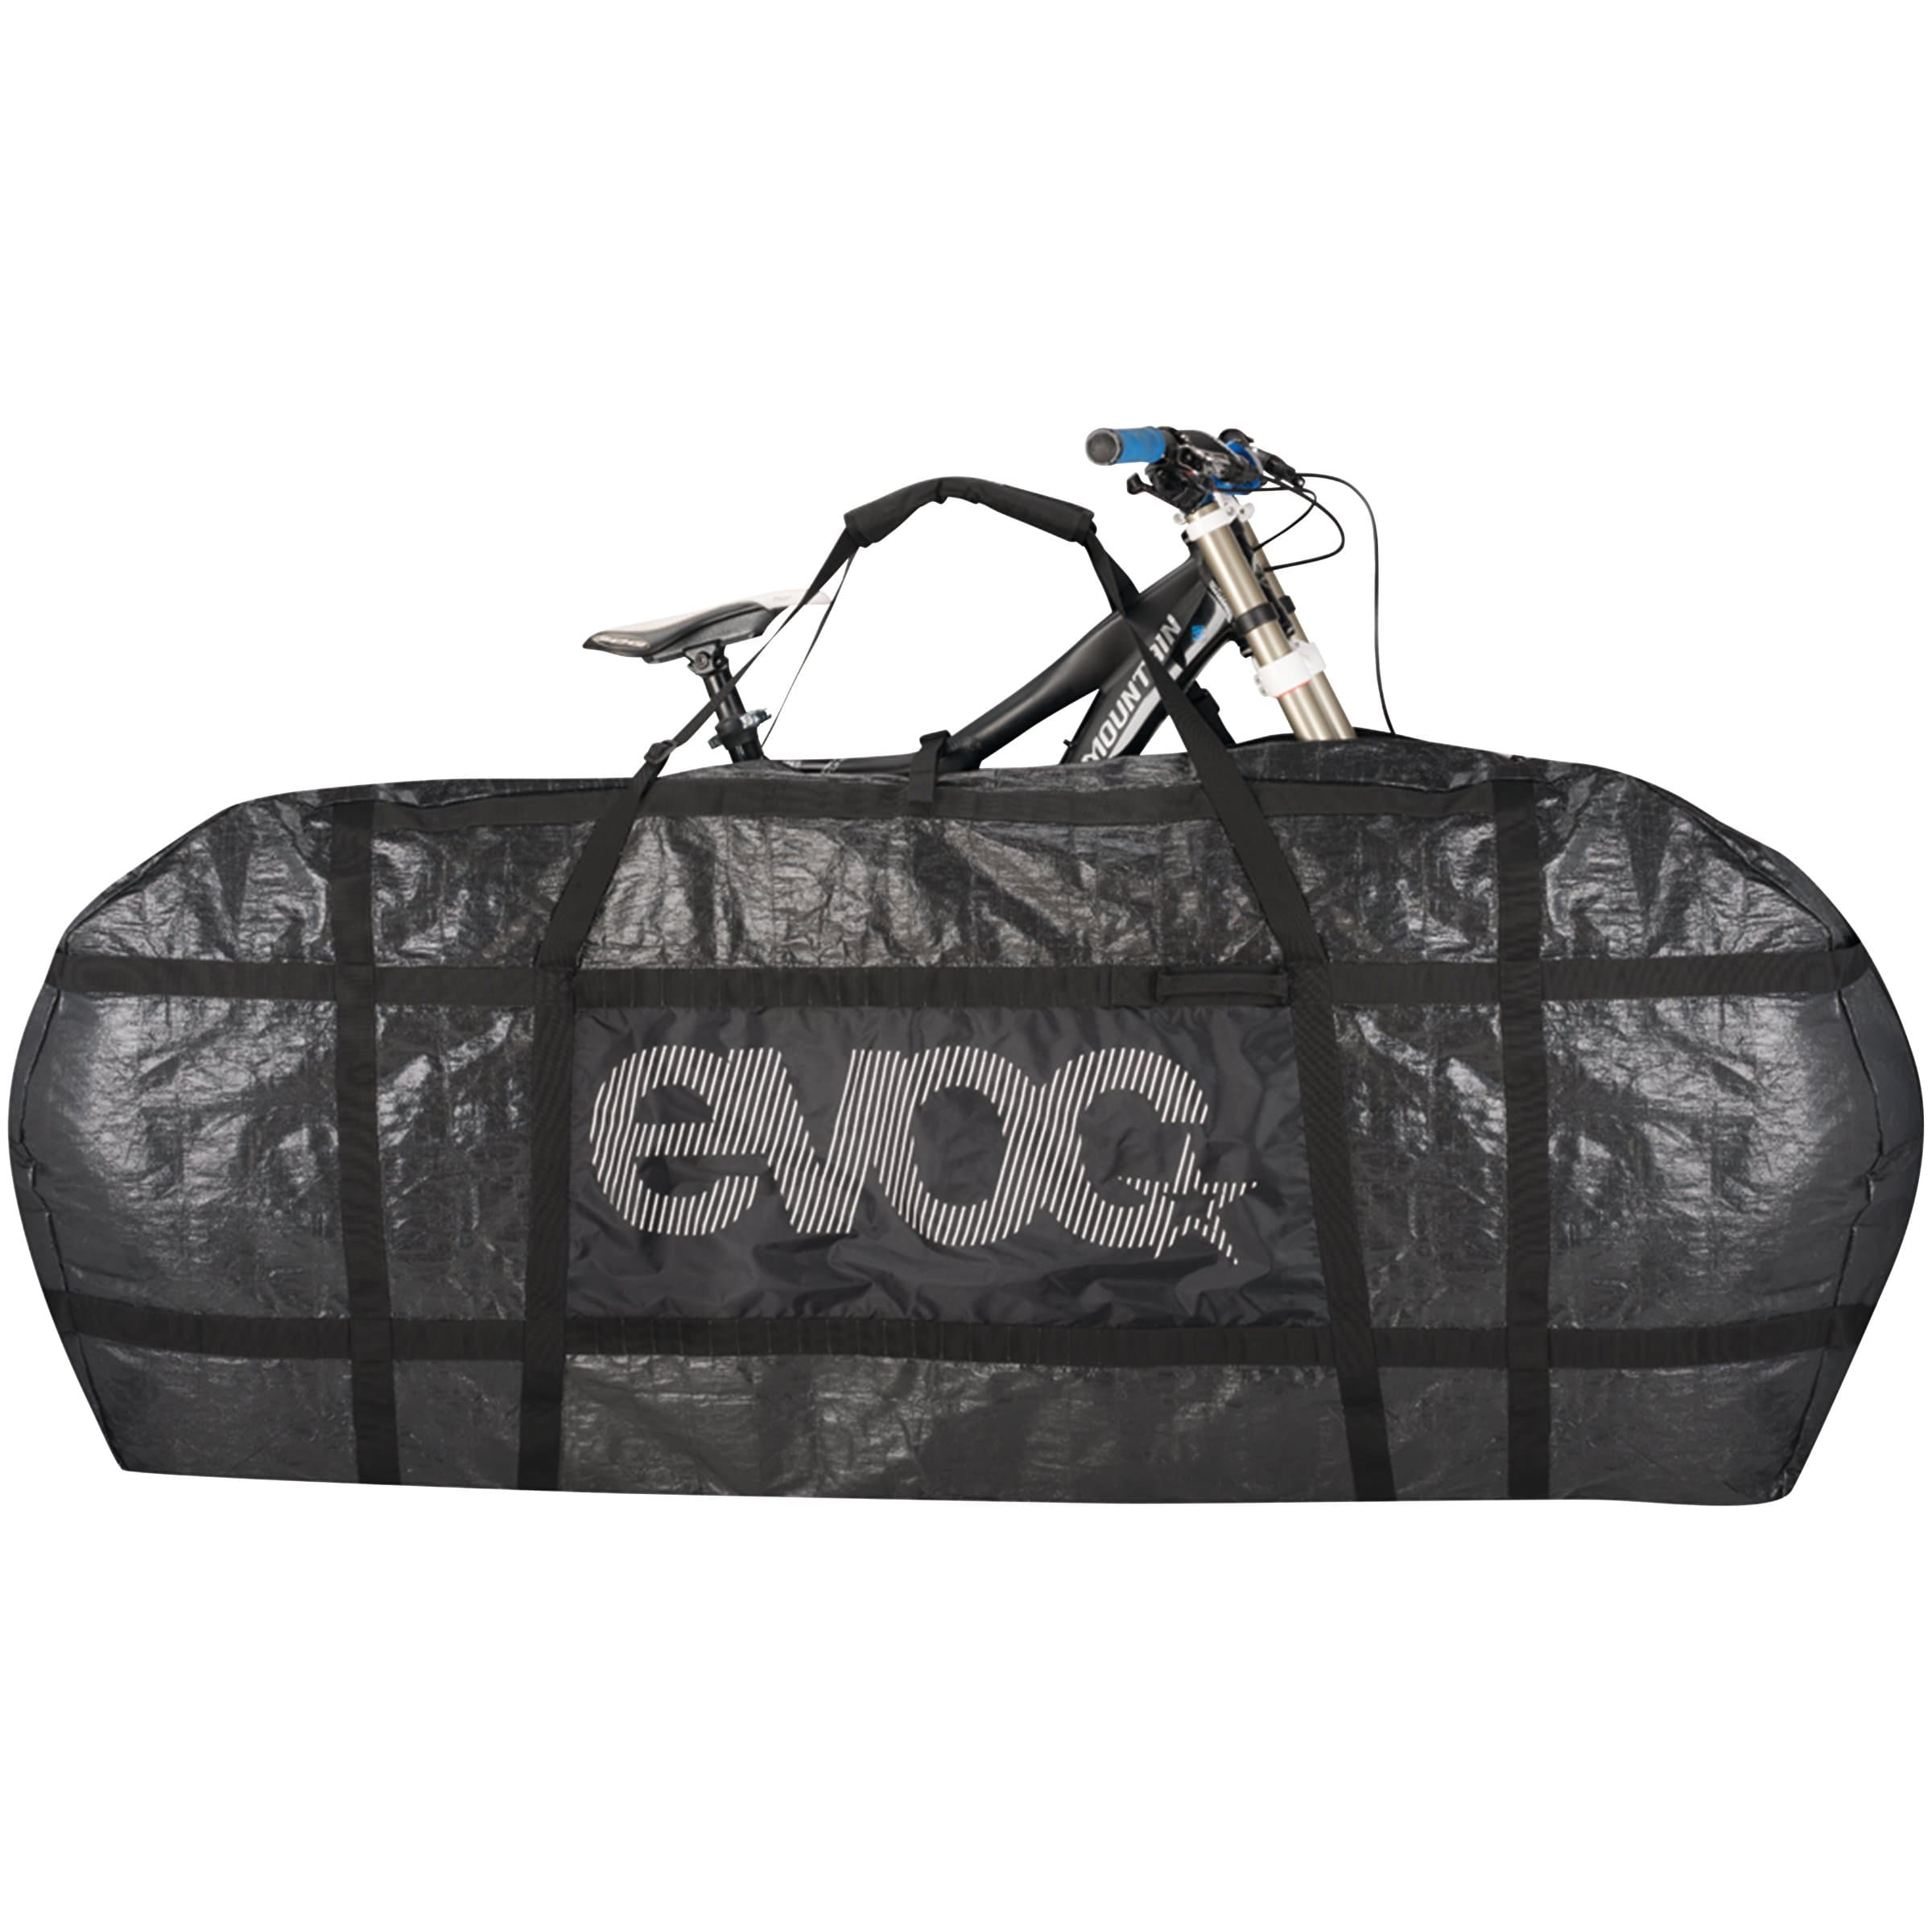 evoc bike cover transport tasche f r fahrr der migros. Black Bedroom Furniture Sets. Home Design Ideas